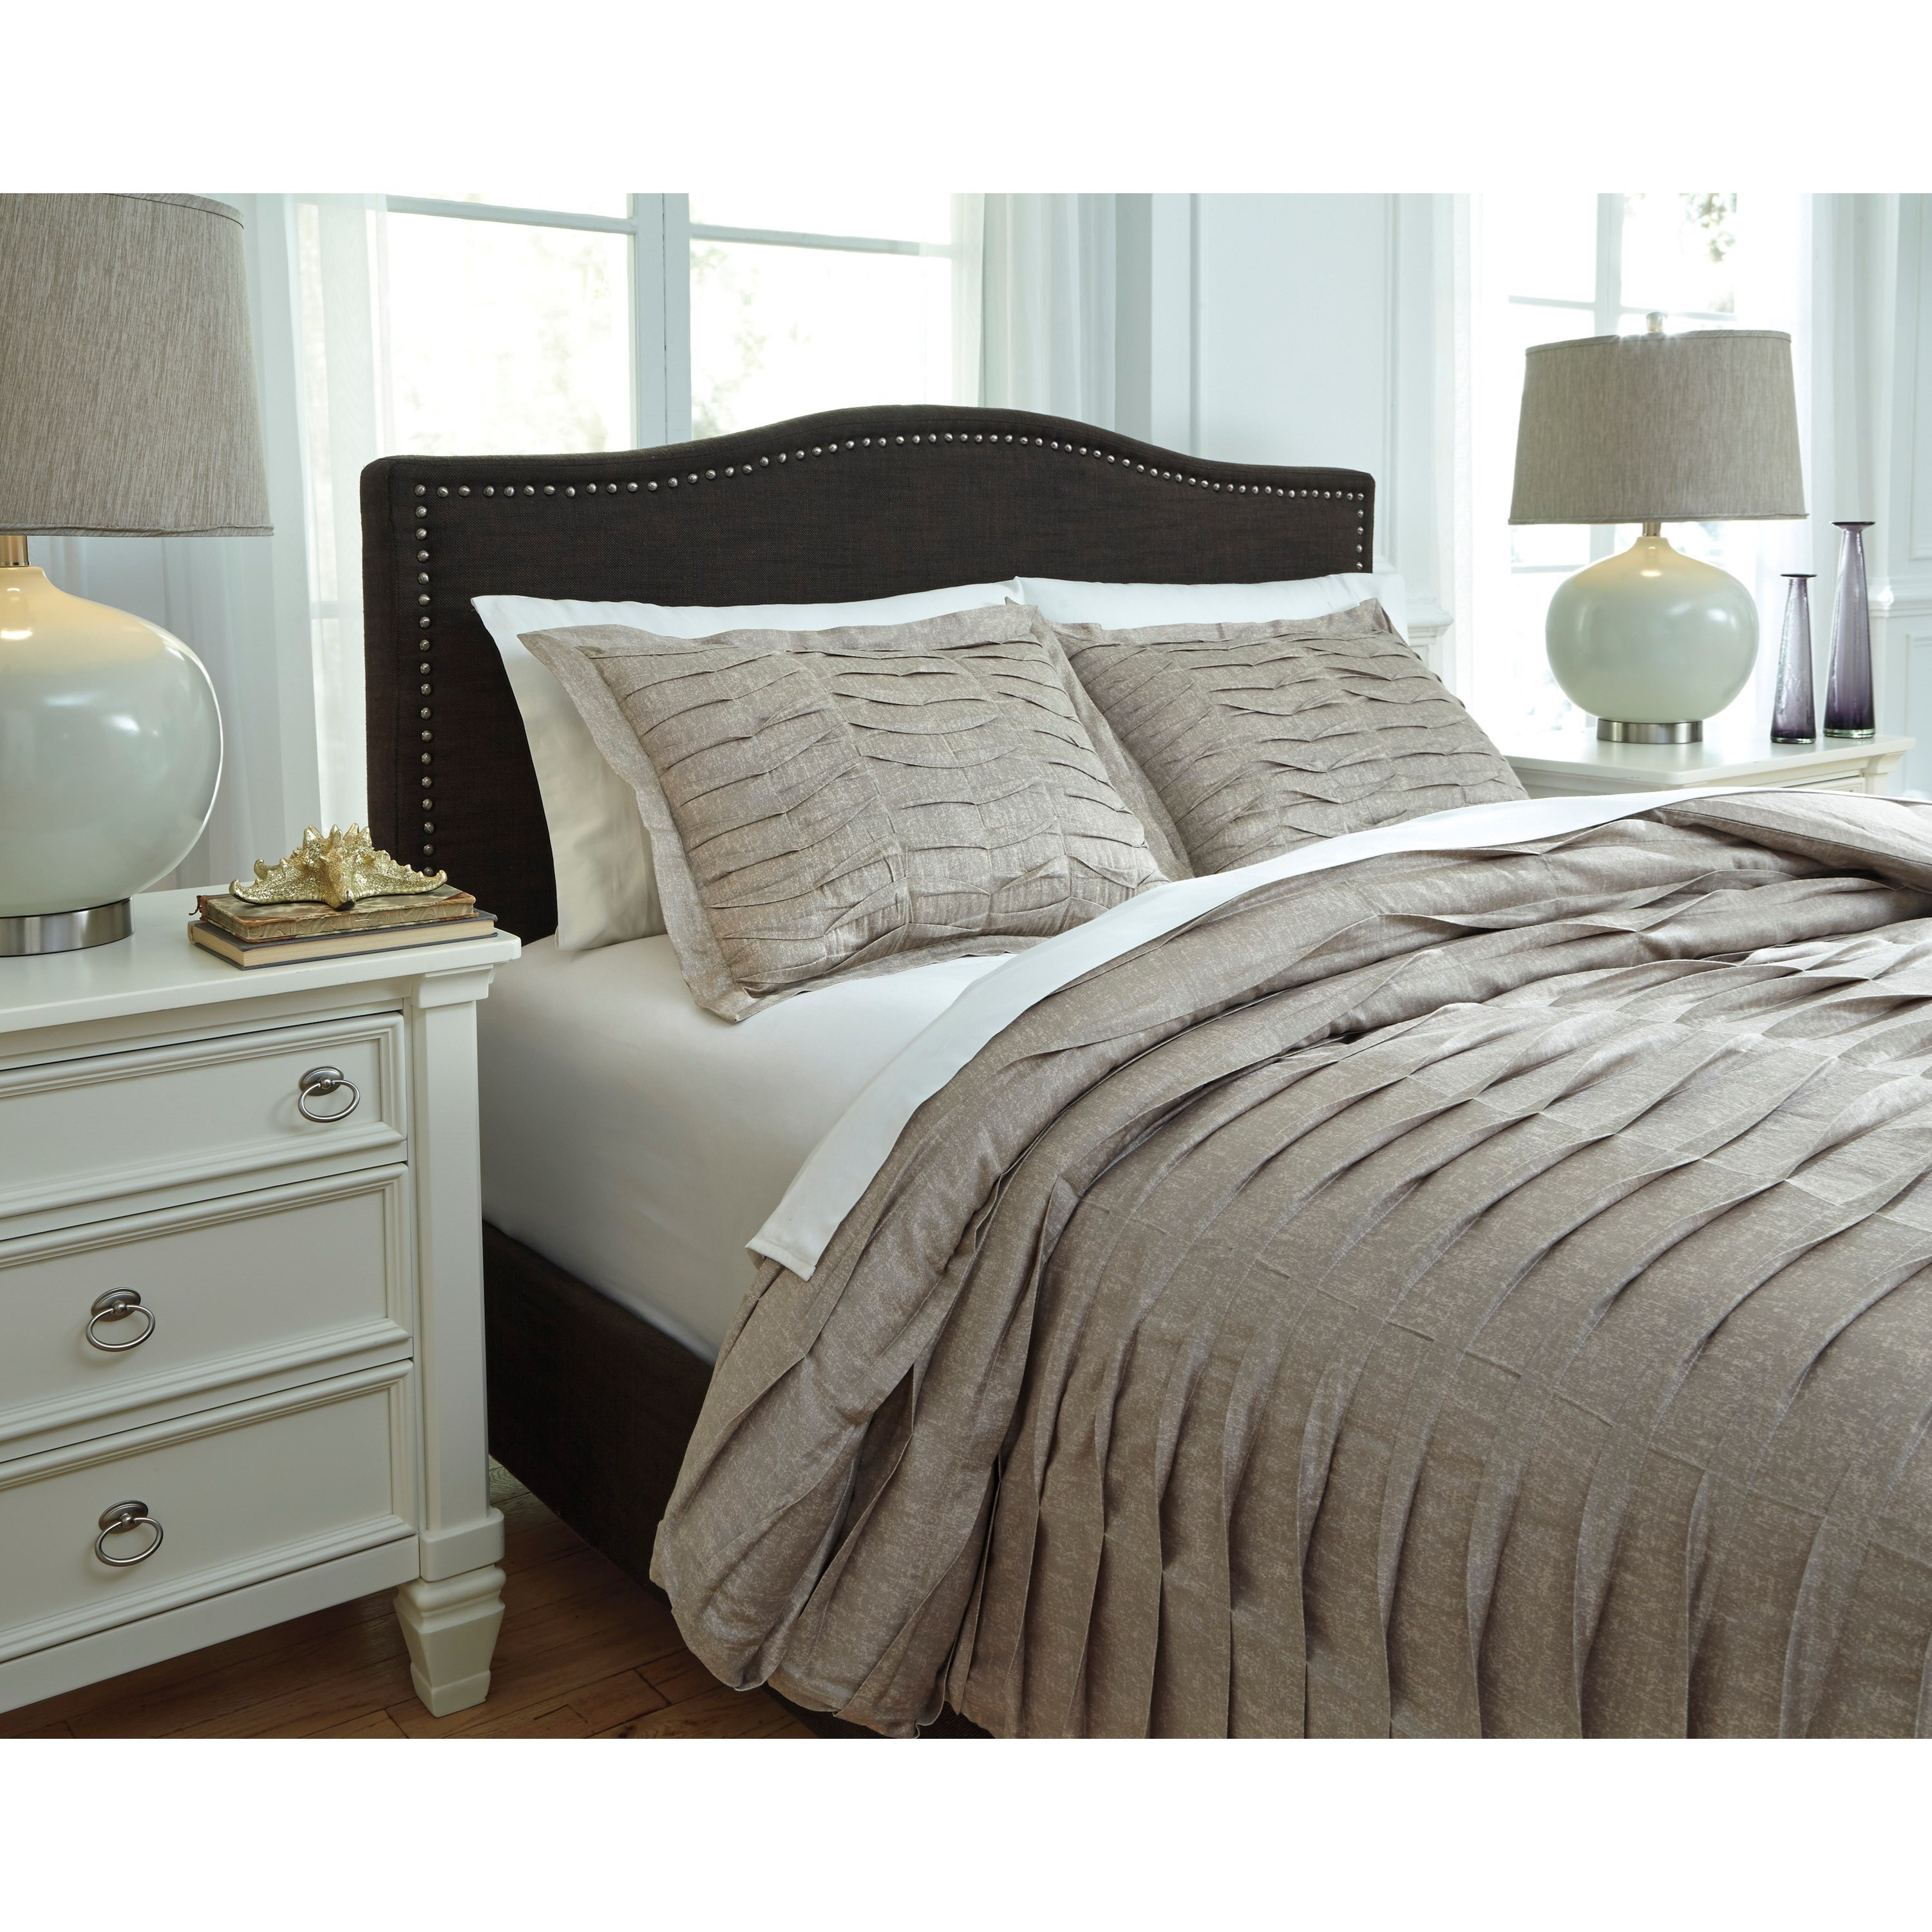 Signature Design By Ashley Bedding Sets Q752003k King